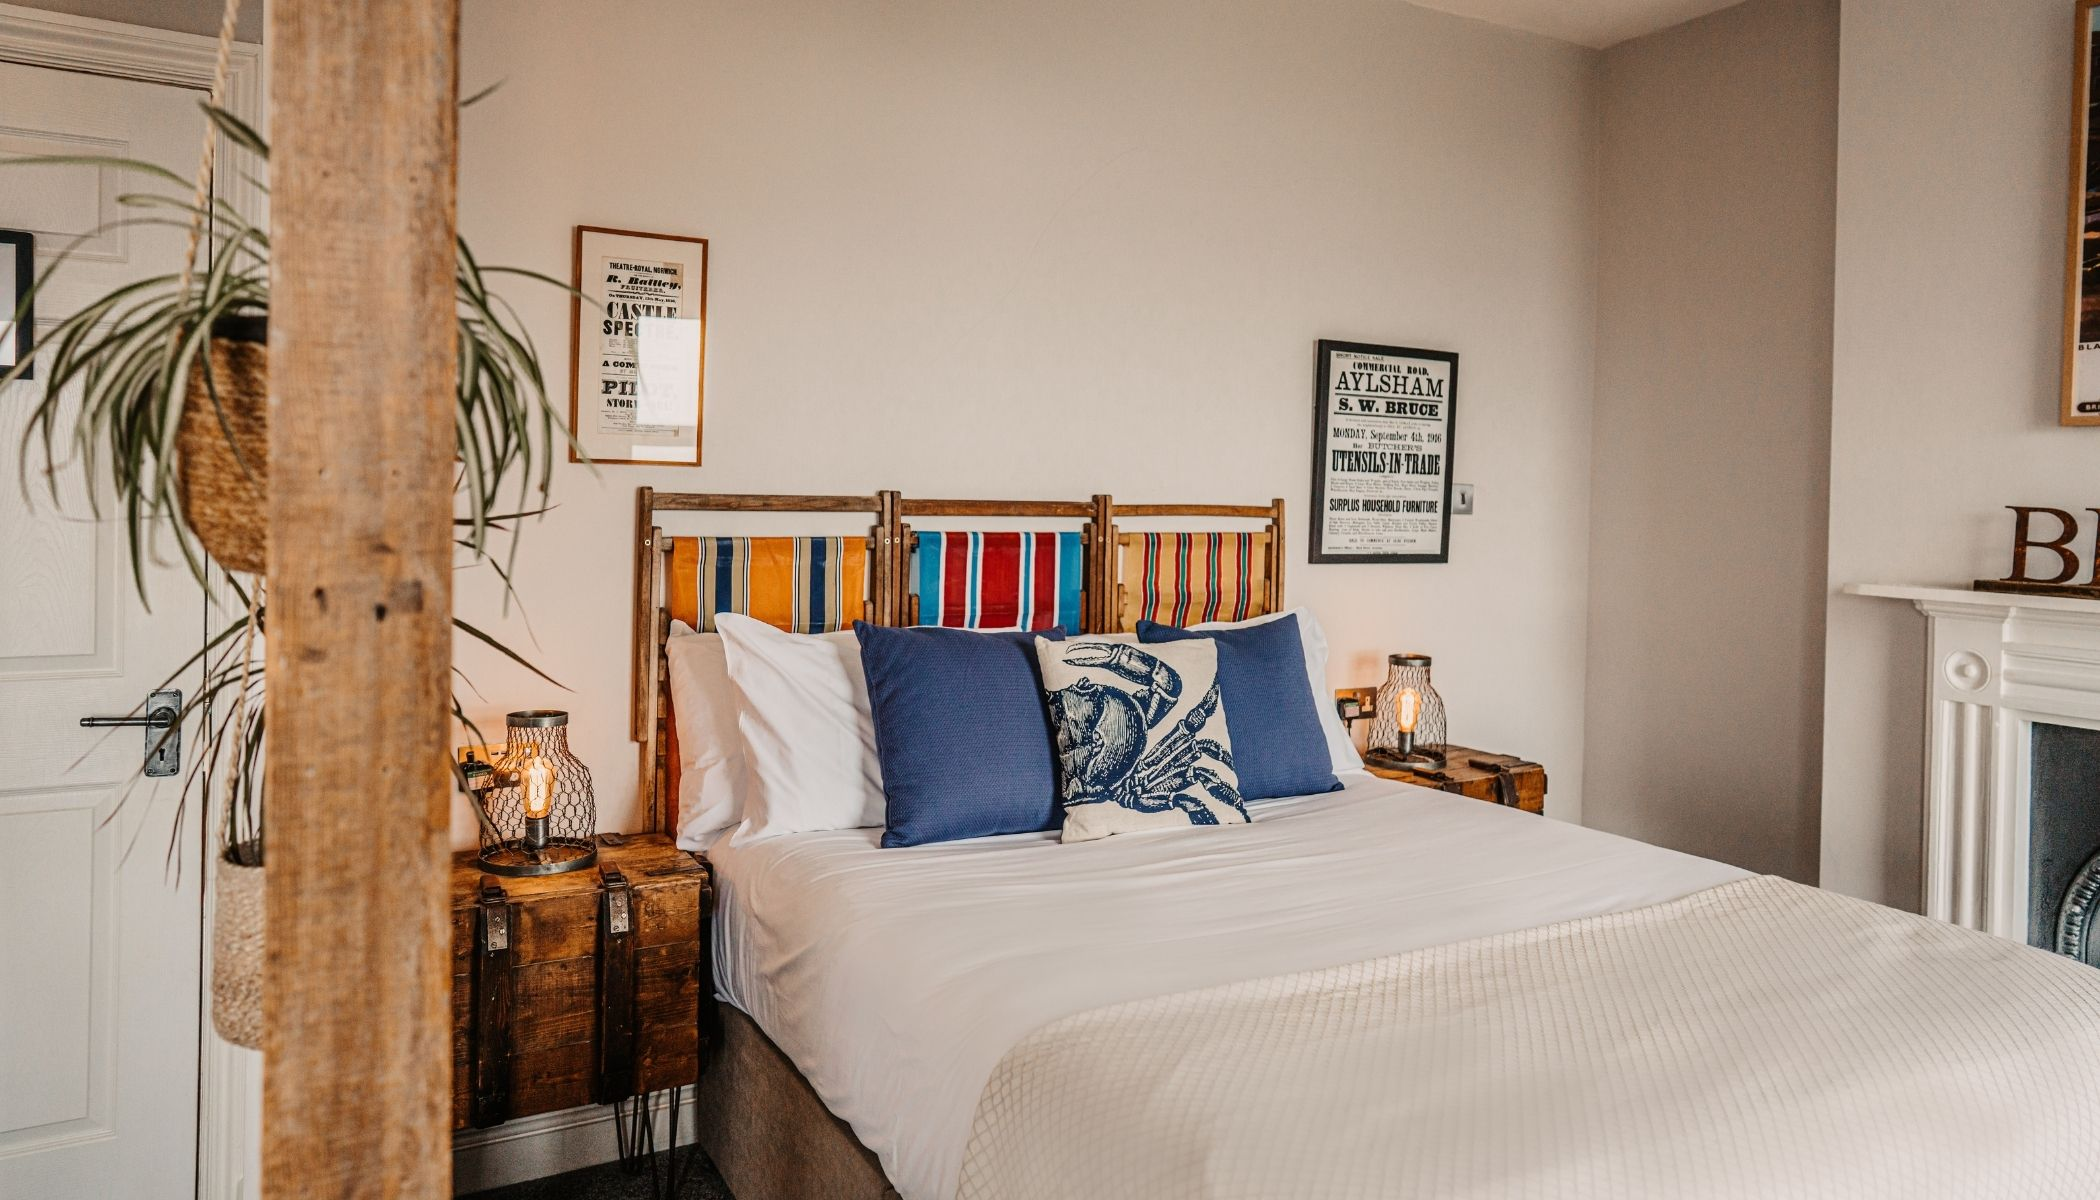 Room With Deck Chair Headboard